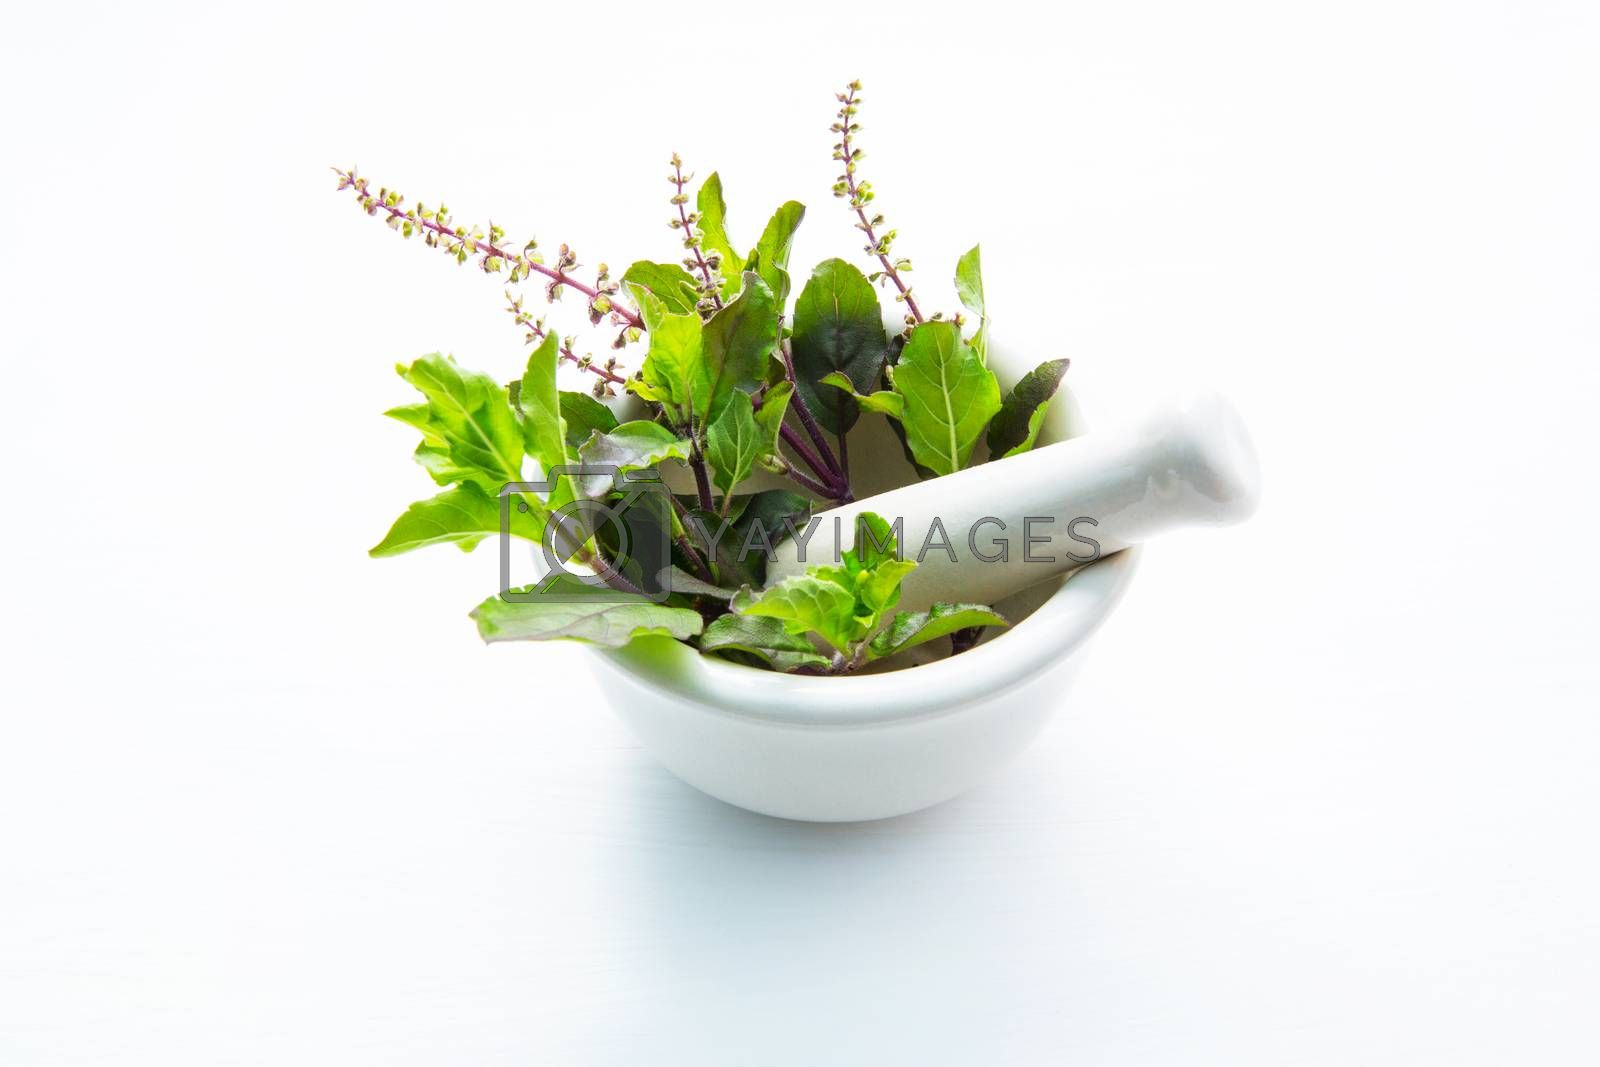 Holy Basil Leaves in porcelain mortar on white wooden background by Bowonpat